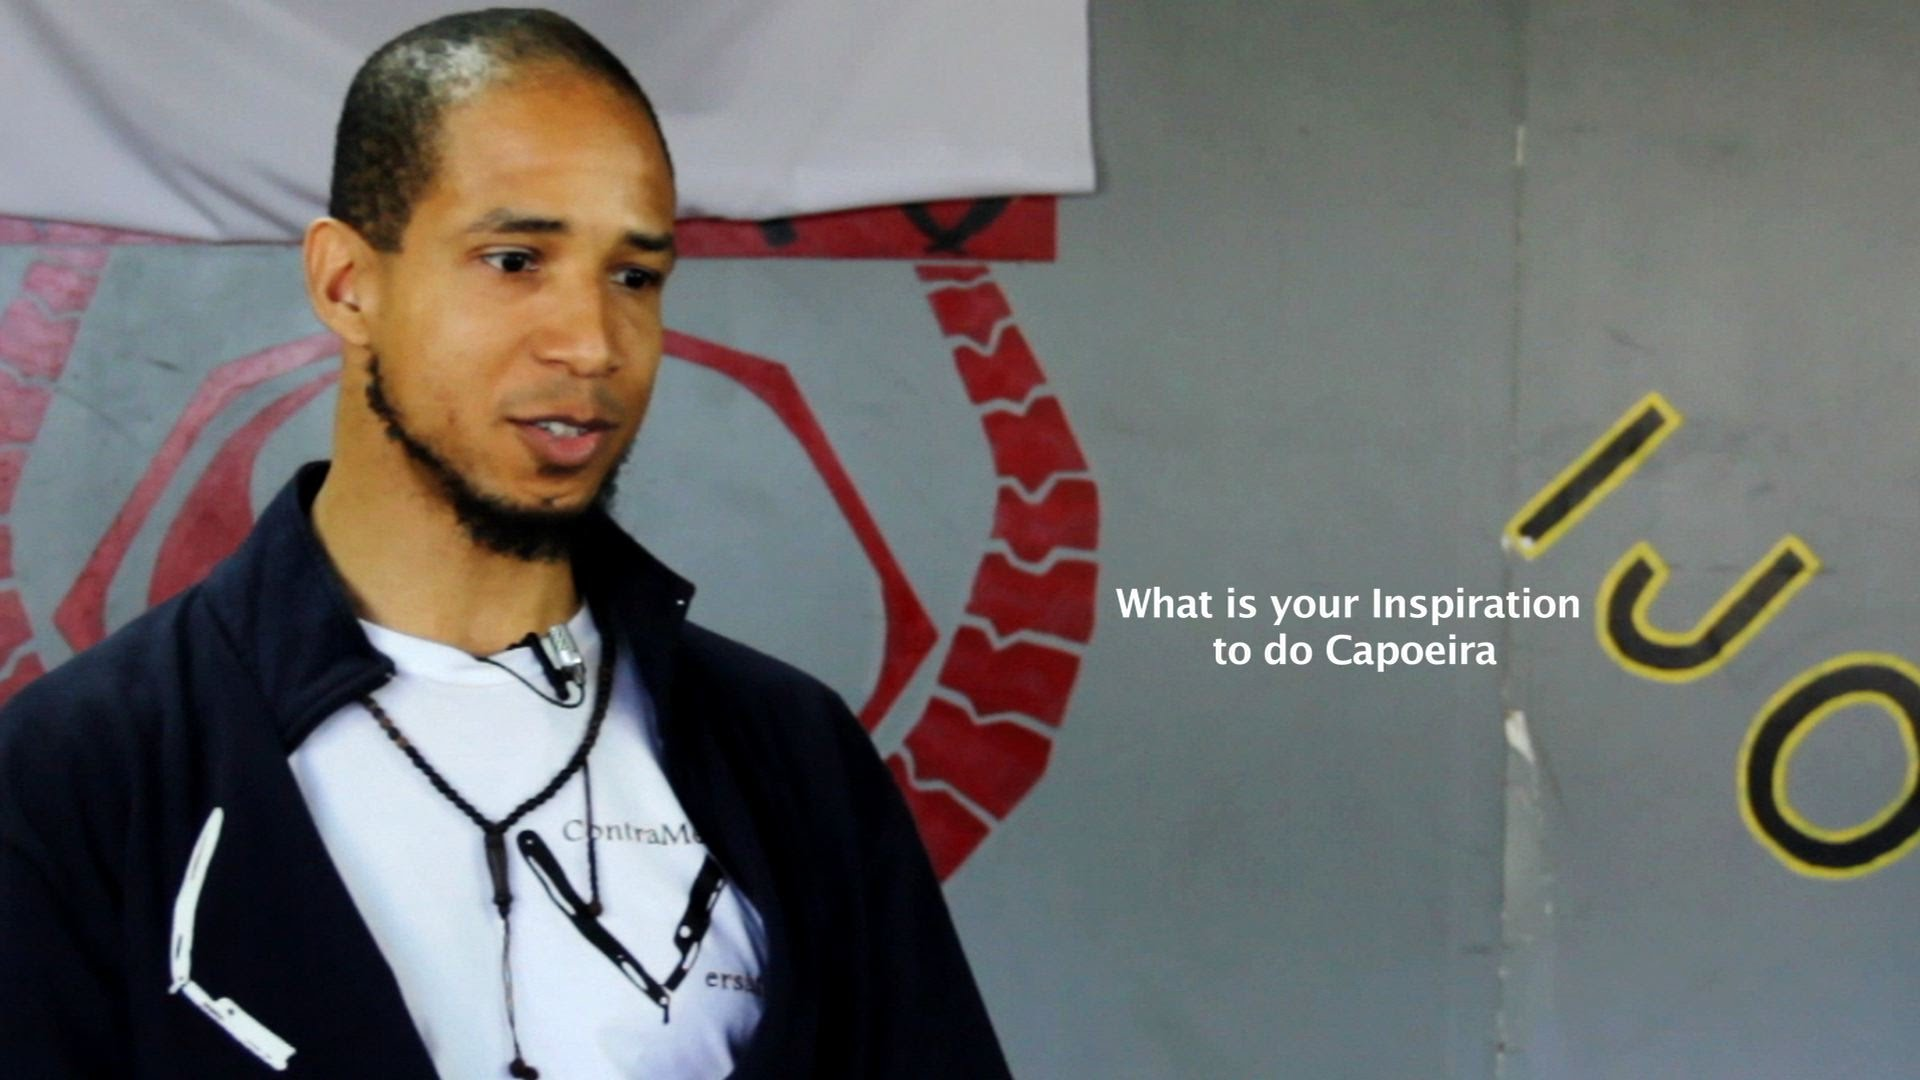 Can Capoeira Help Me Physically, Mentally, and Spiritually?